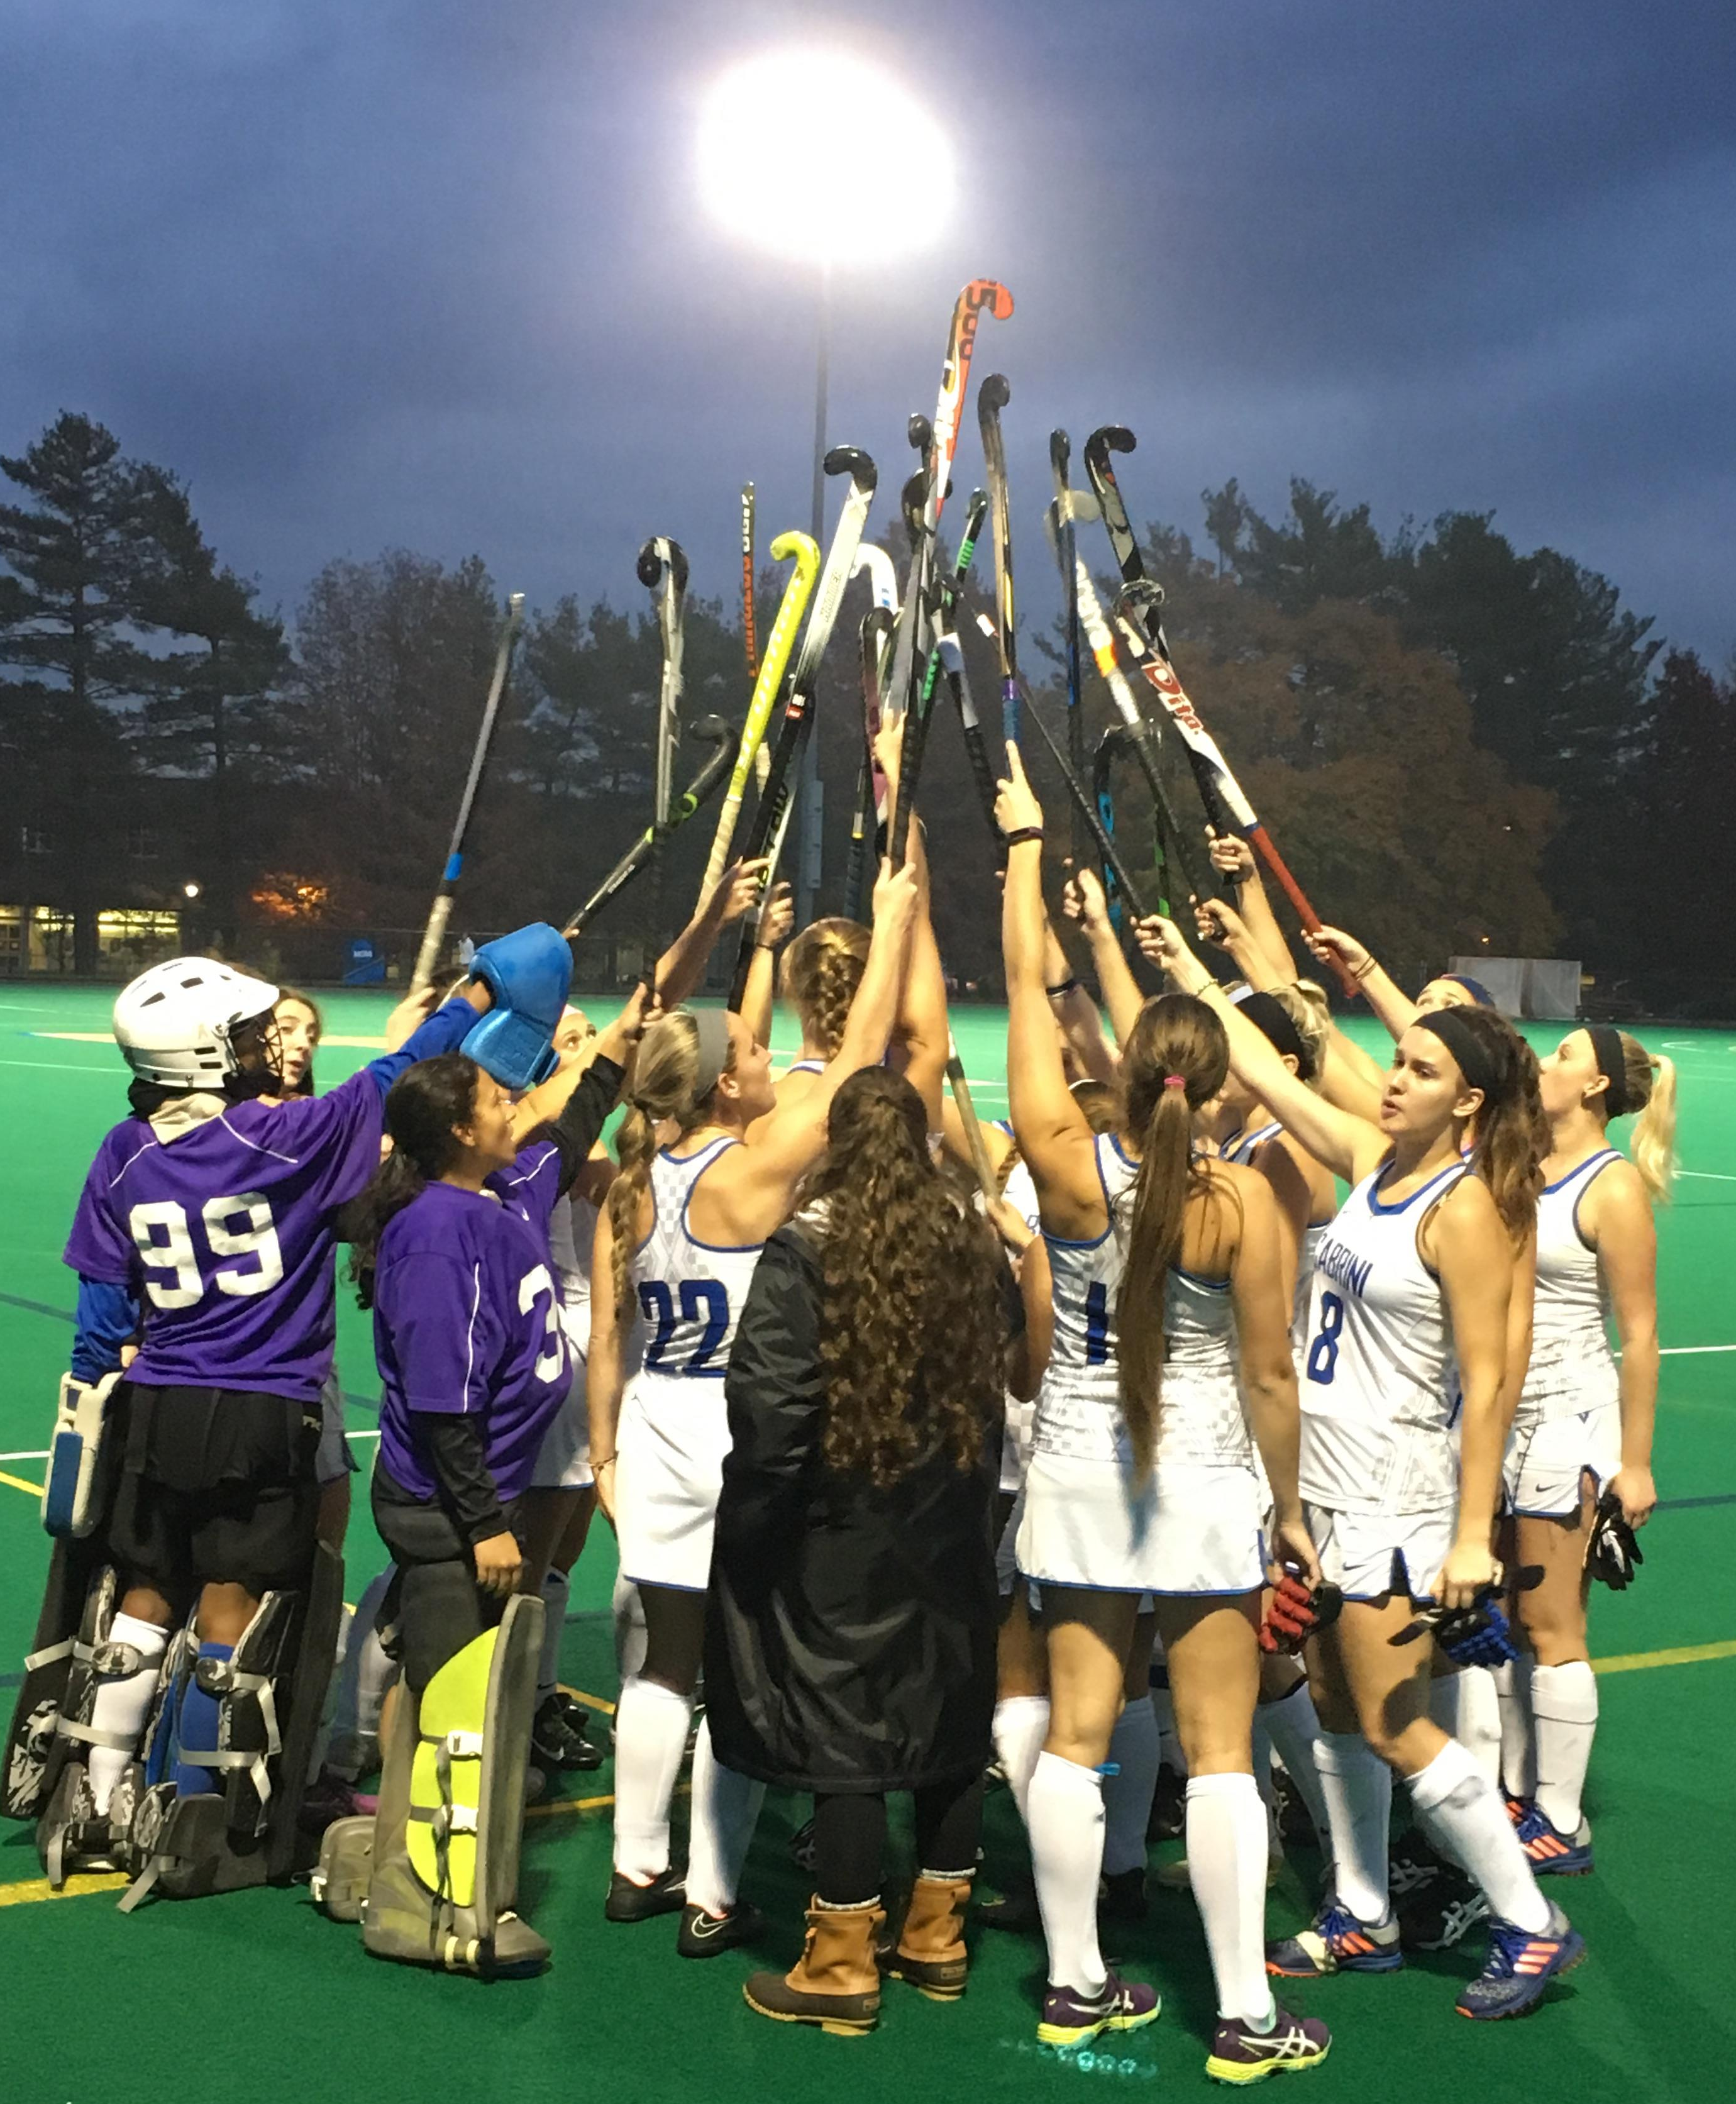 Lack of unity in this year's field hockey team results in loses